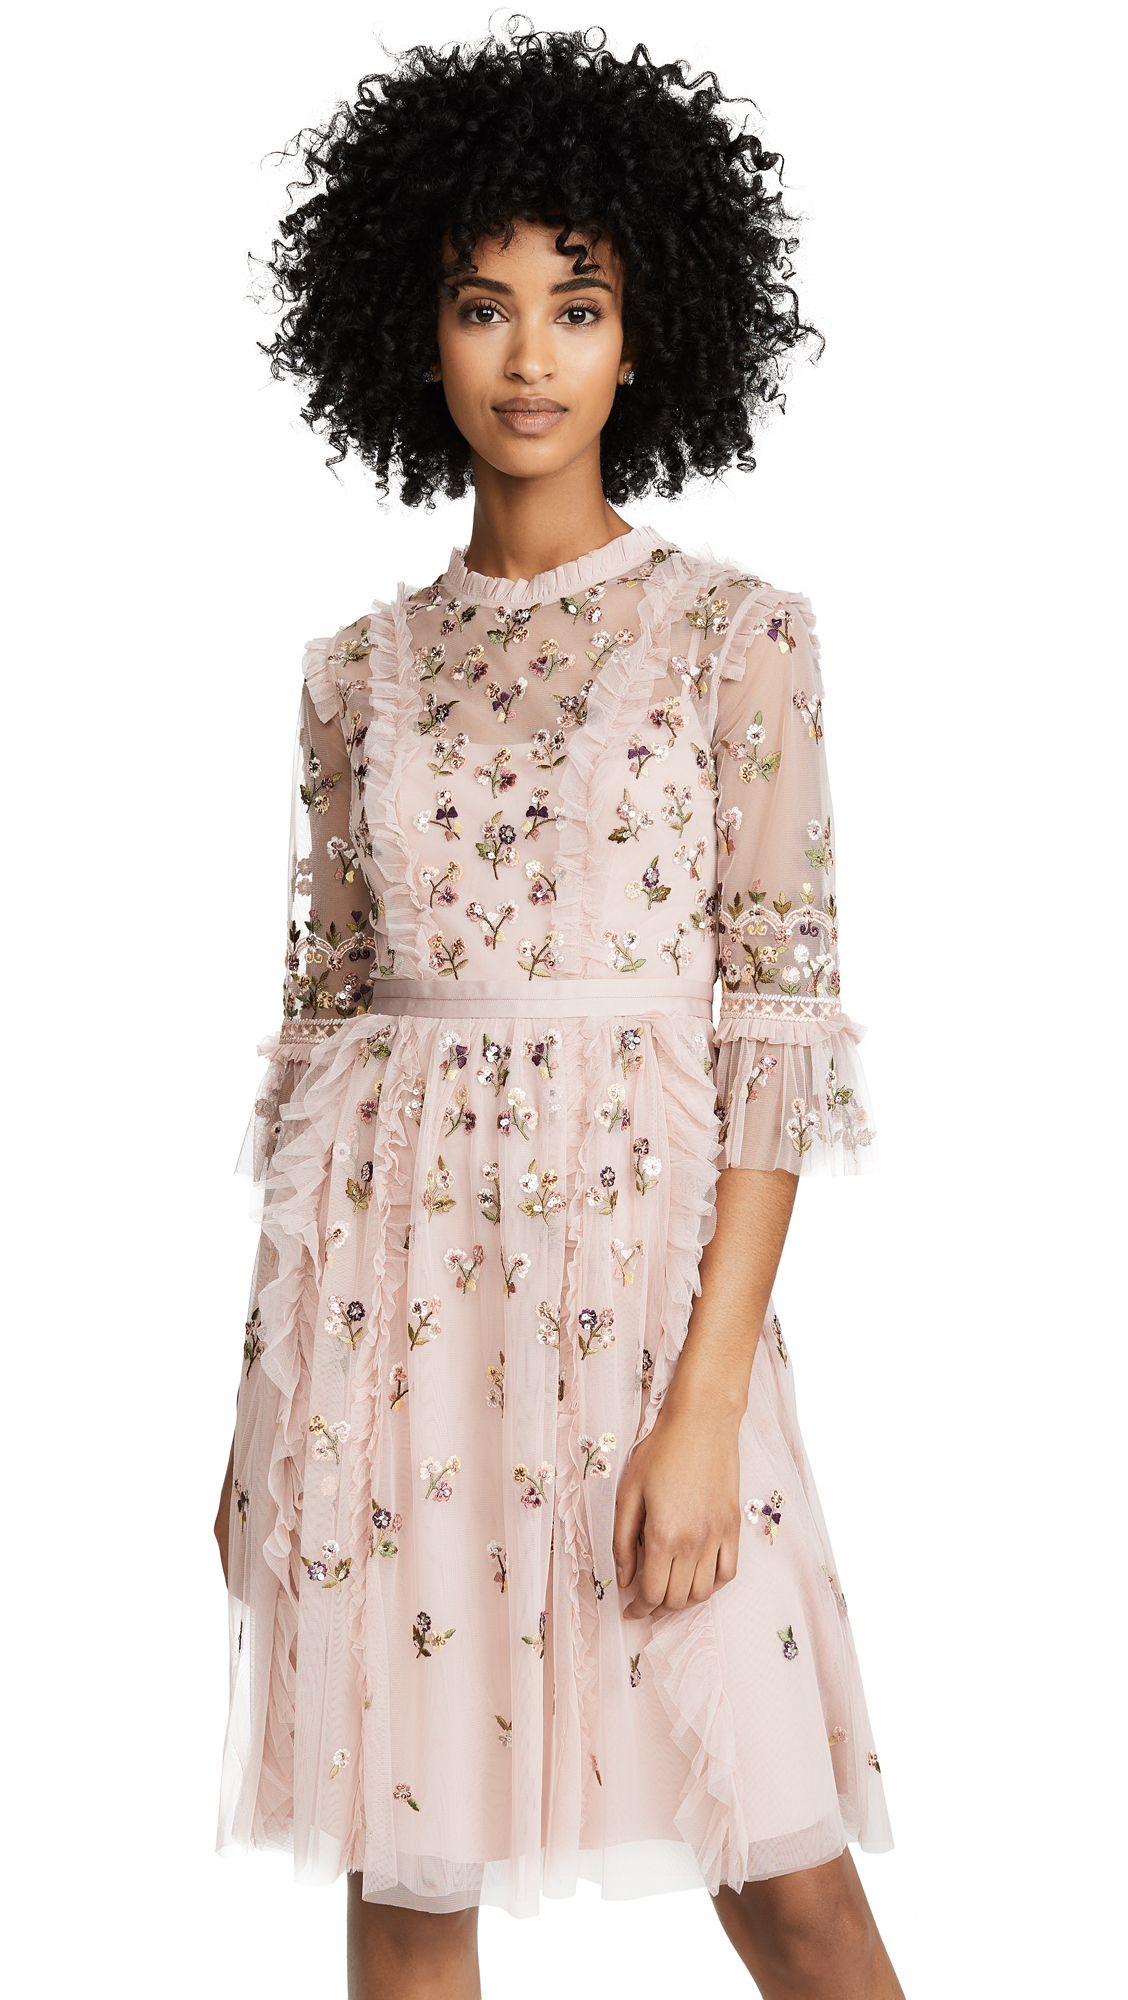 Needle & Thread Rocco Ditsy Dress - Rose Pink